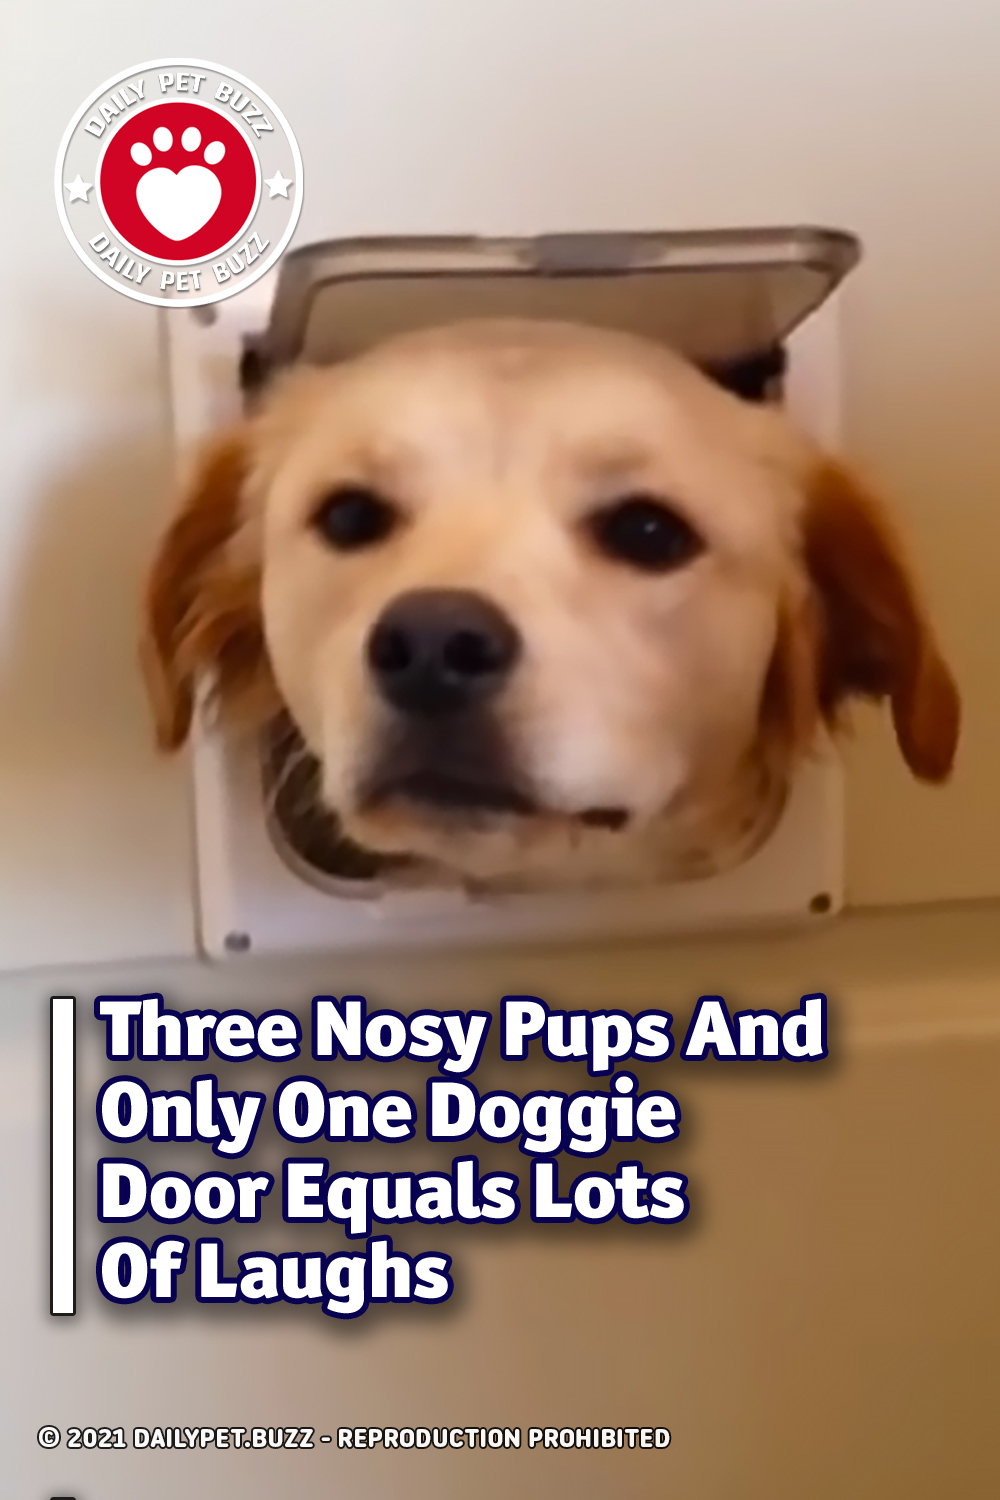 Three Nosy Pups And Only One Doggie Door Equals Lots Of Laughs